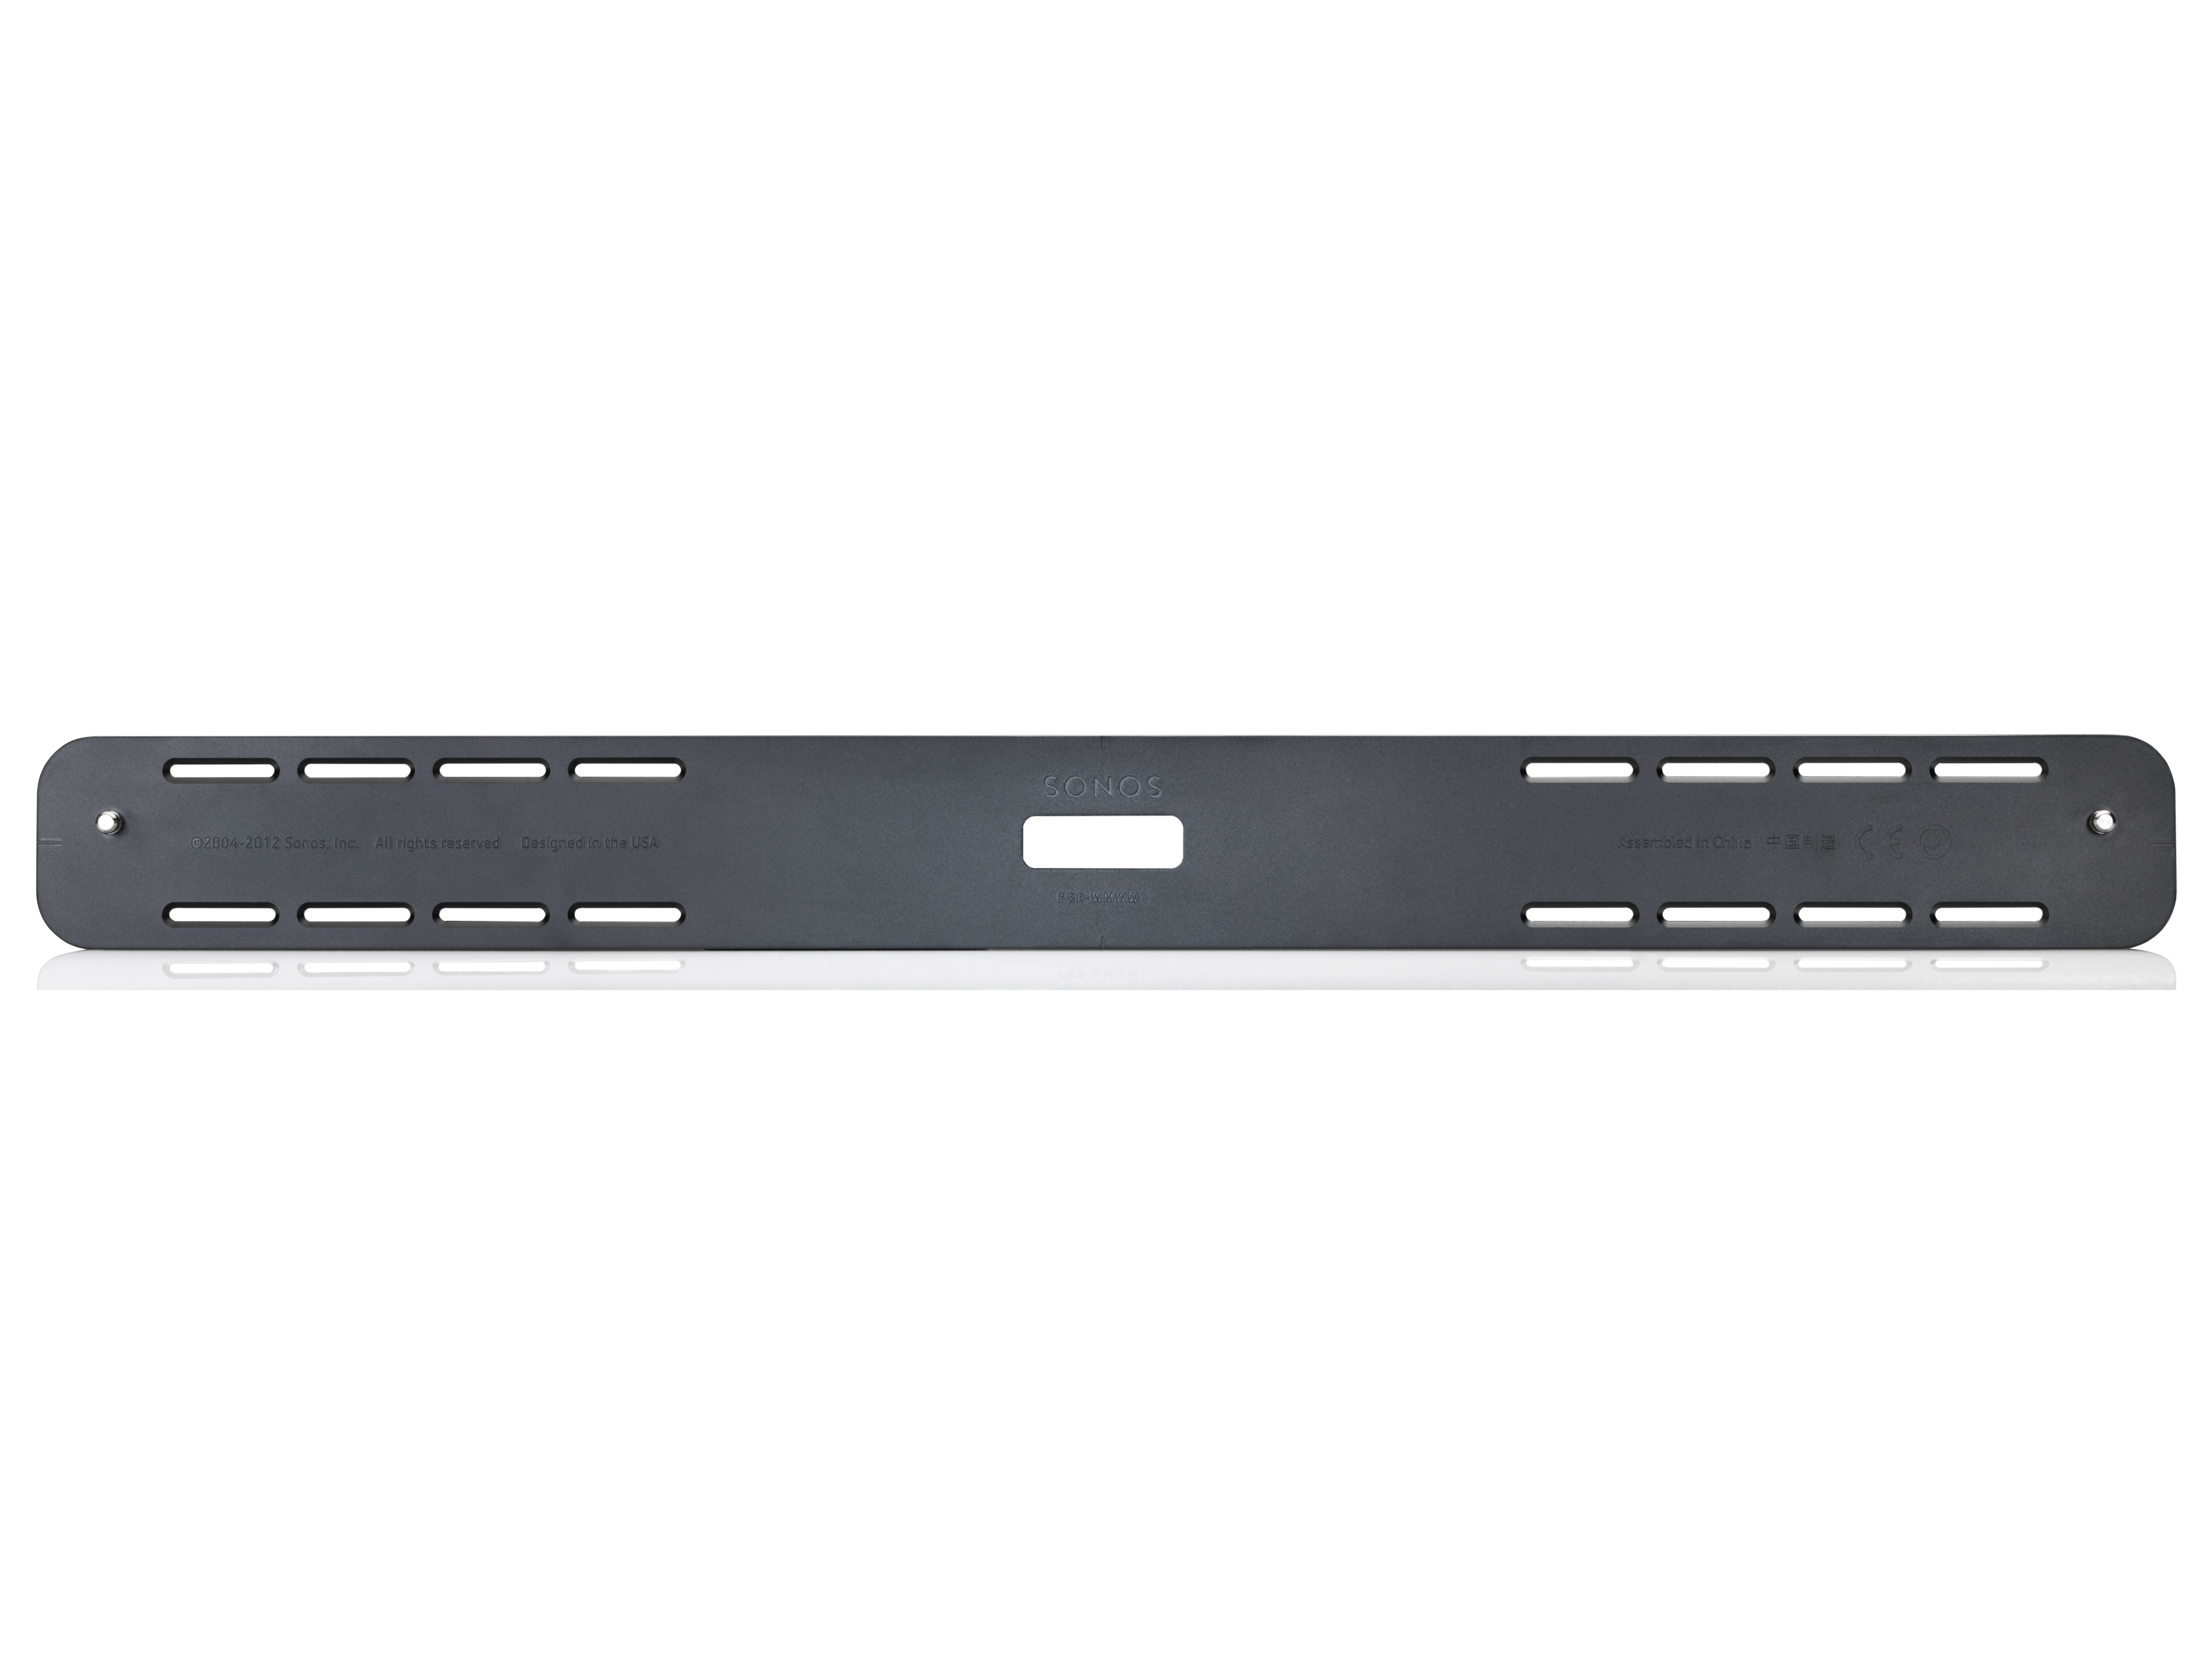 Крепление Sonos Wall Mount for Playbar